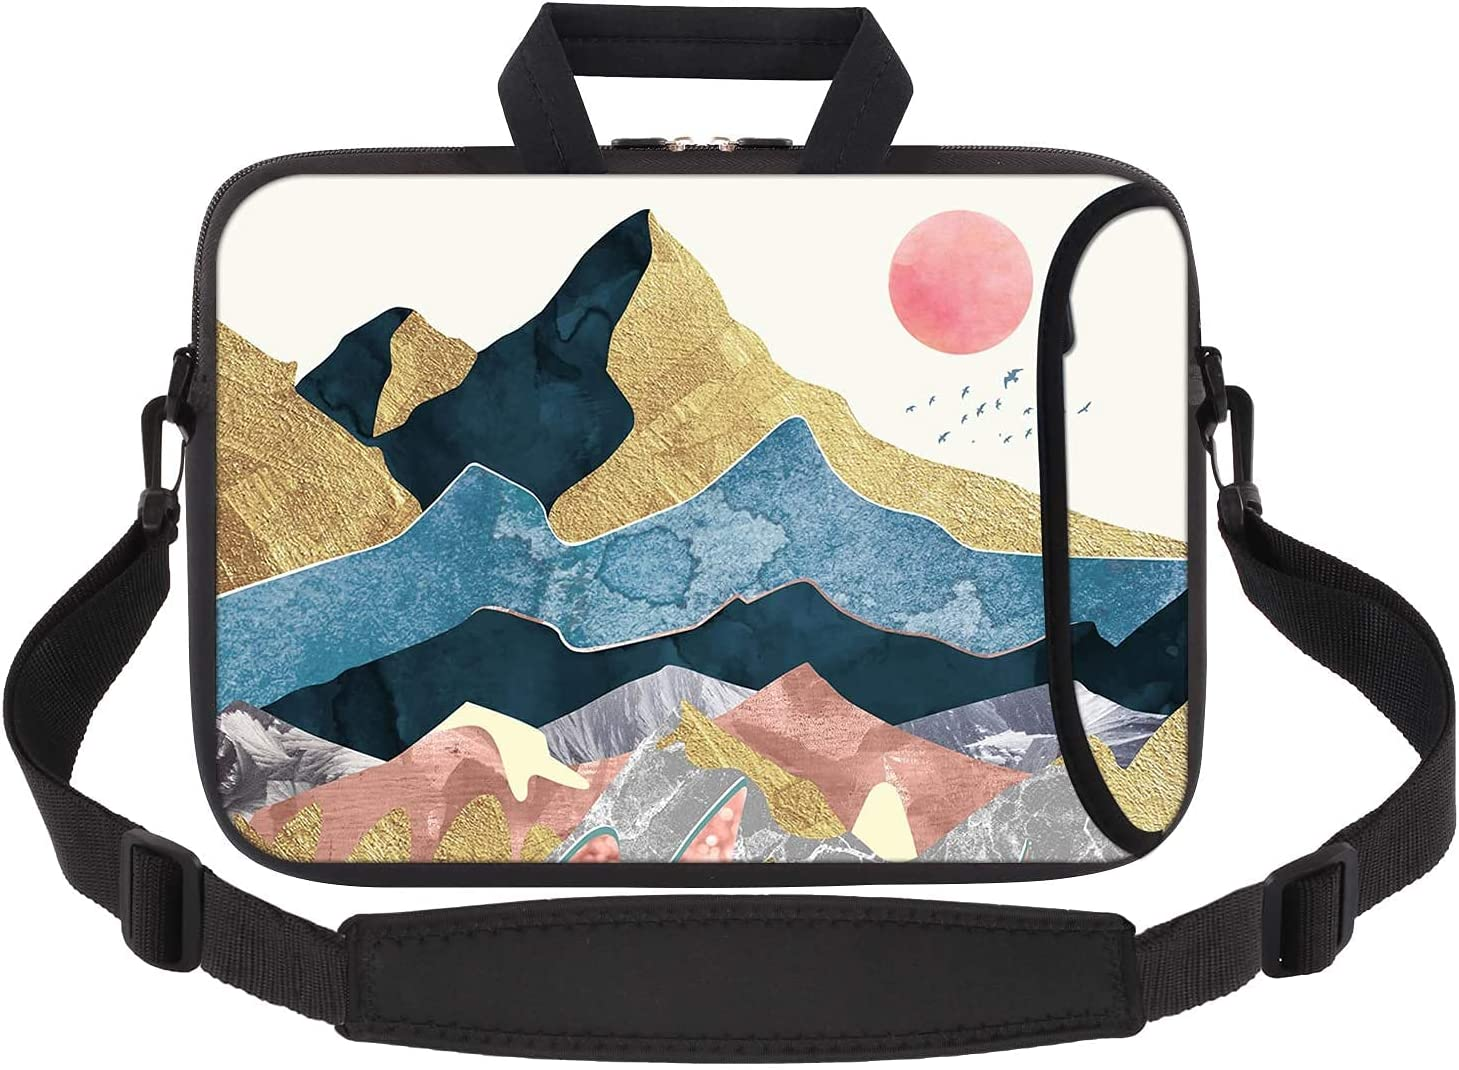 iCasso Laptop Sleeve Carring Case Handble Bag Compatible with 13 13.3 inch 2018-2021 MacBook Pro, MacBook Air, Chromebook Notebook ,Waterproof Shock Resistant Bag Case with Accessory Pocket - Abstract